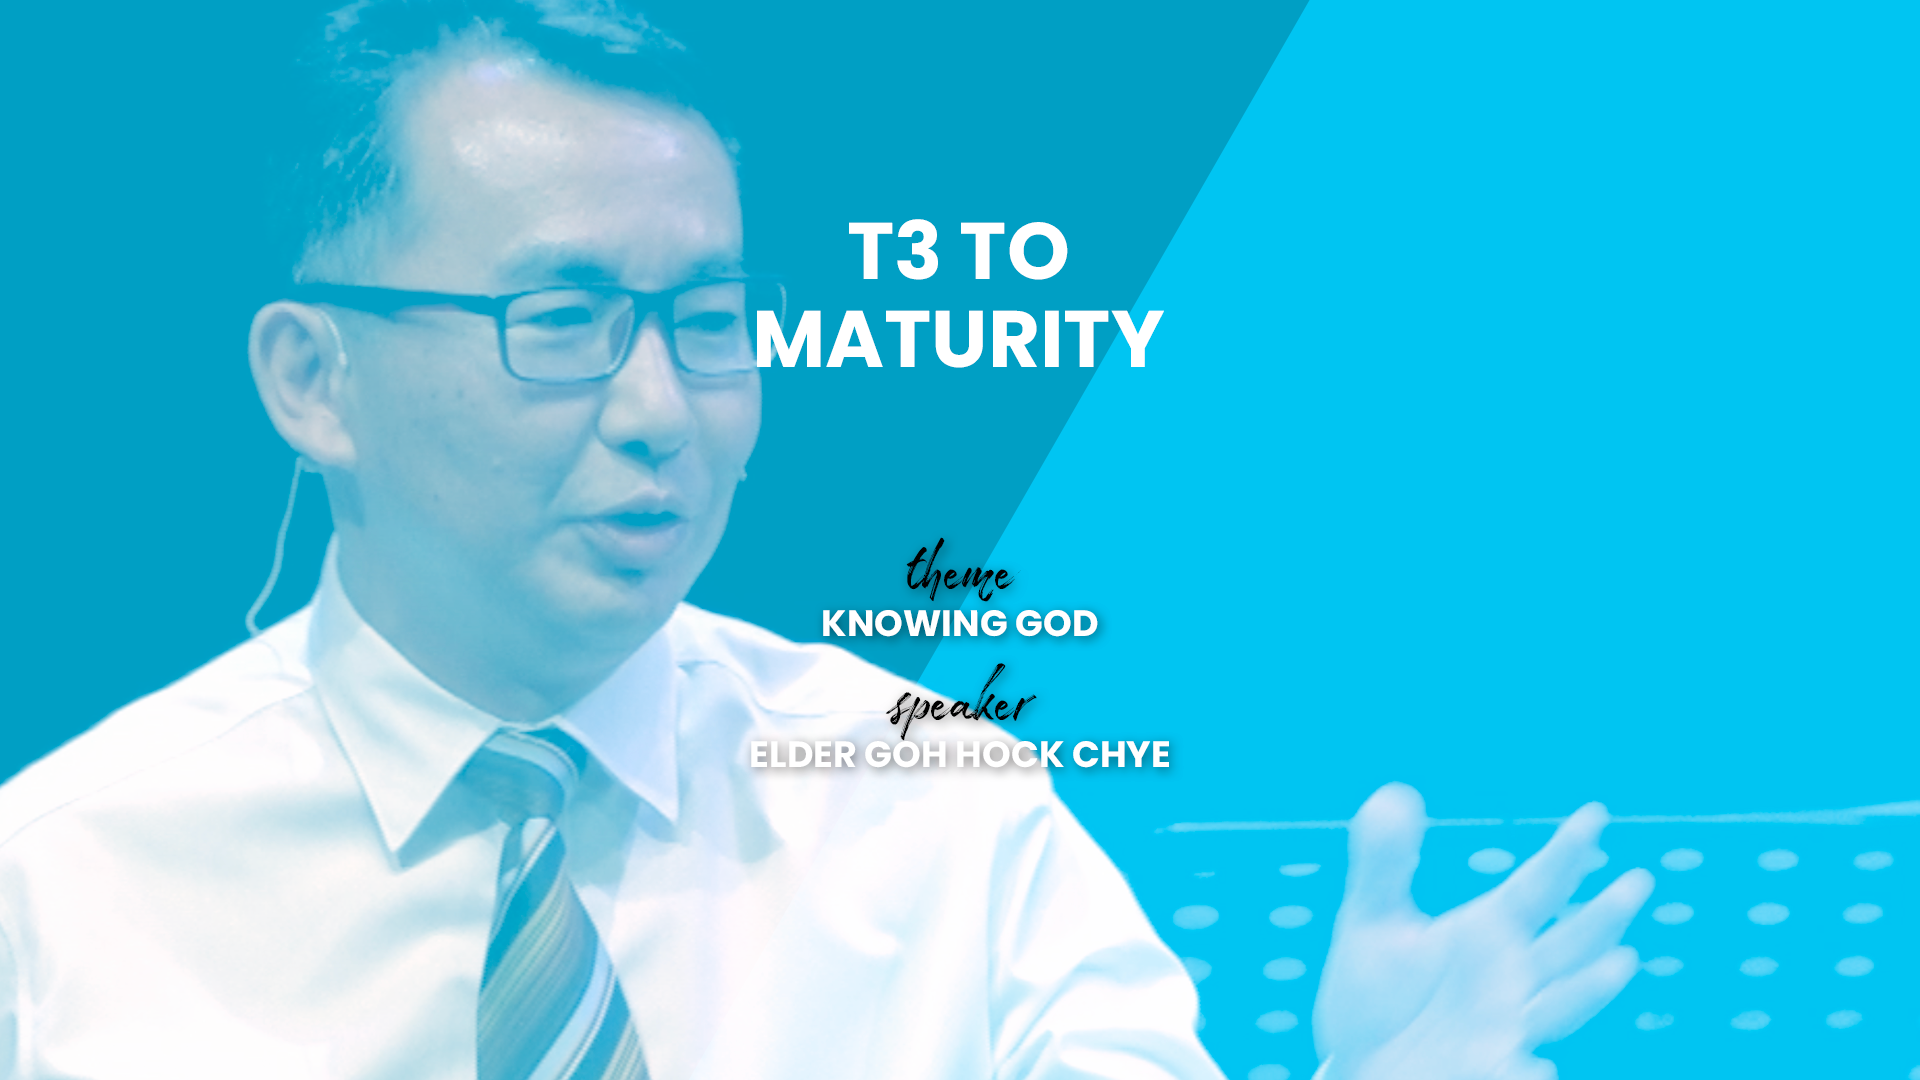 T3 to Maturity